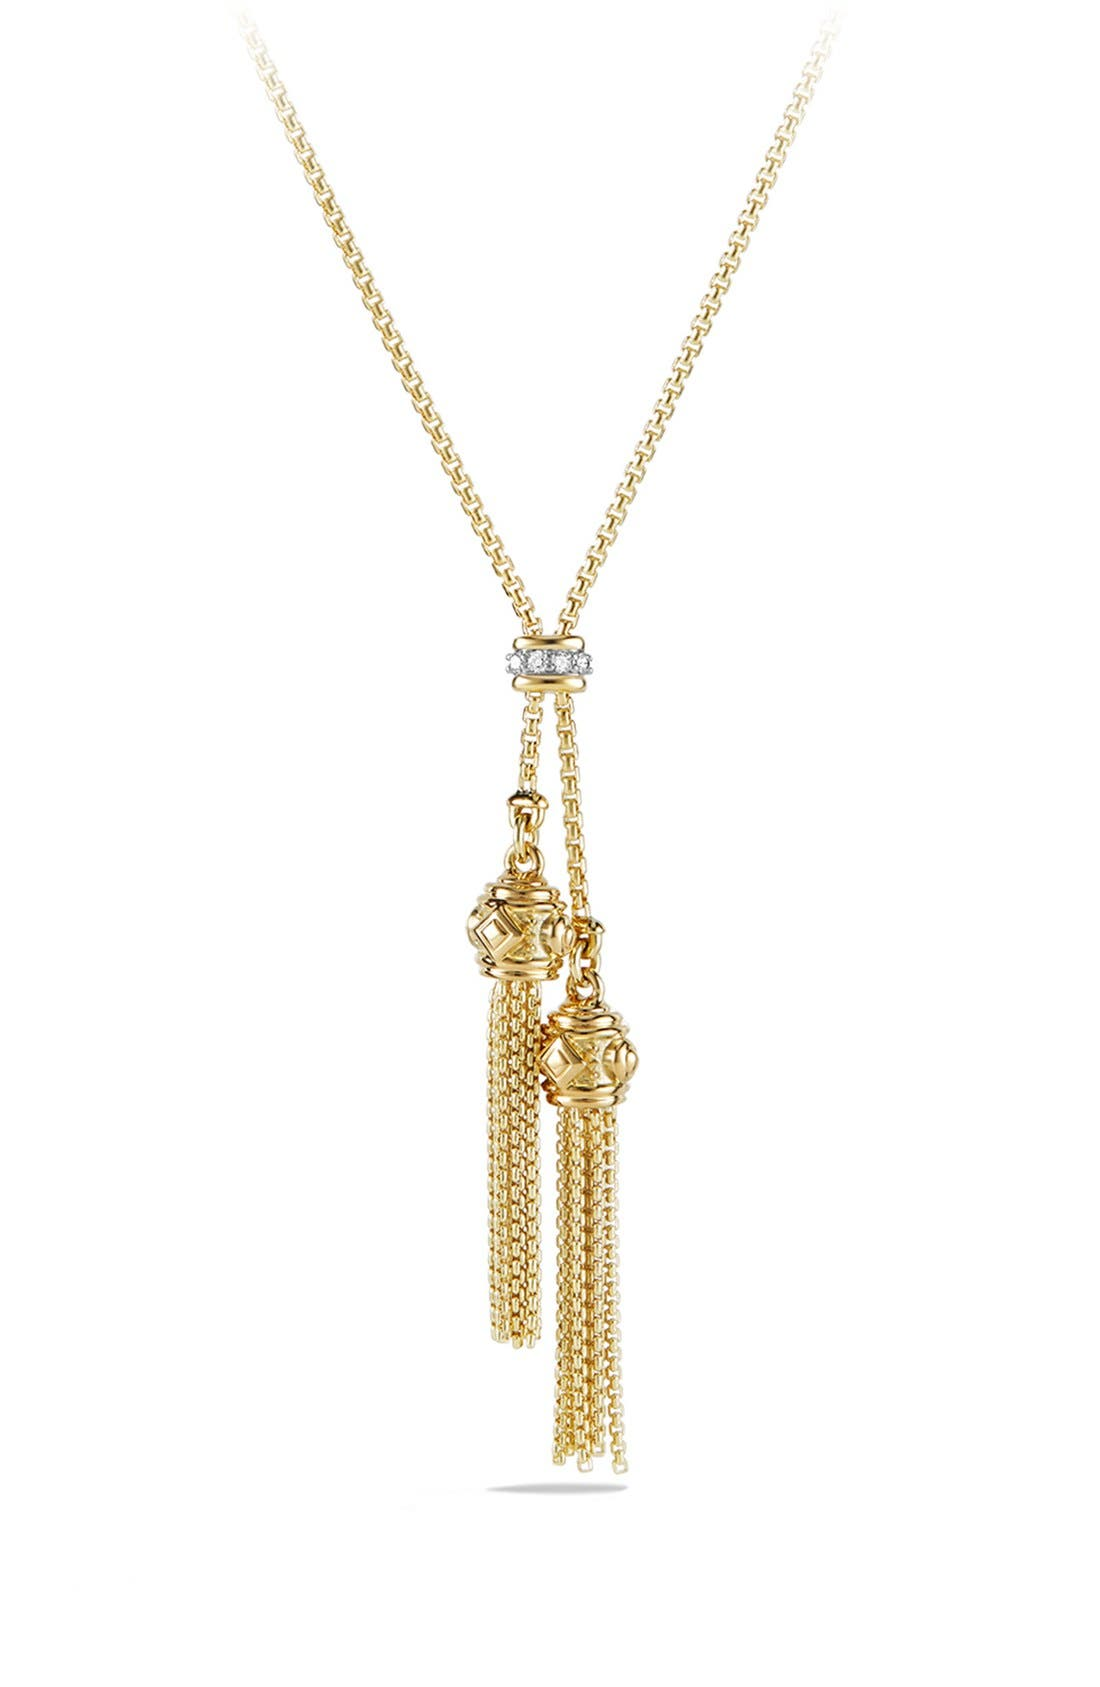 'Renaissance' Tassel Necklace with 18K Gold and Diamonds,                         Main,                         color, 710